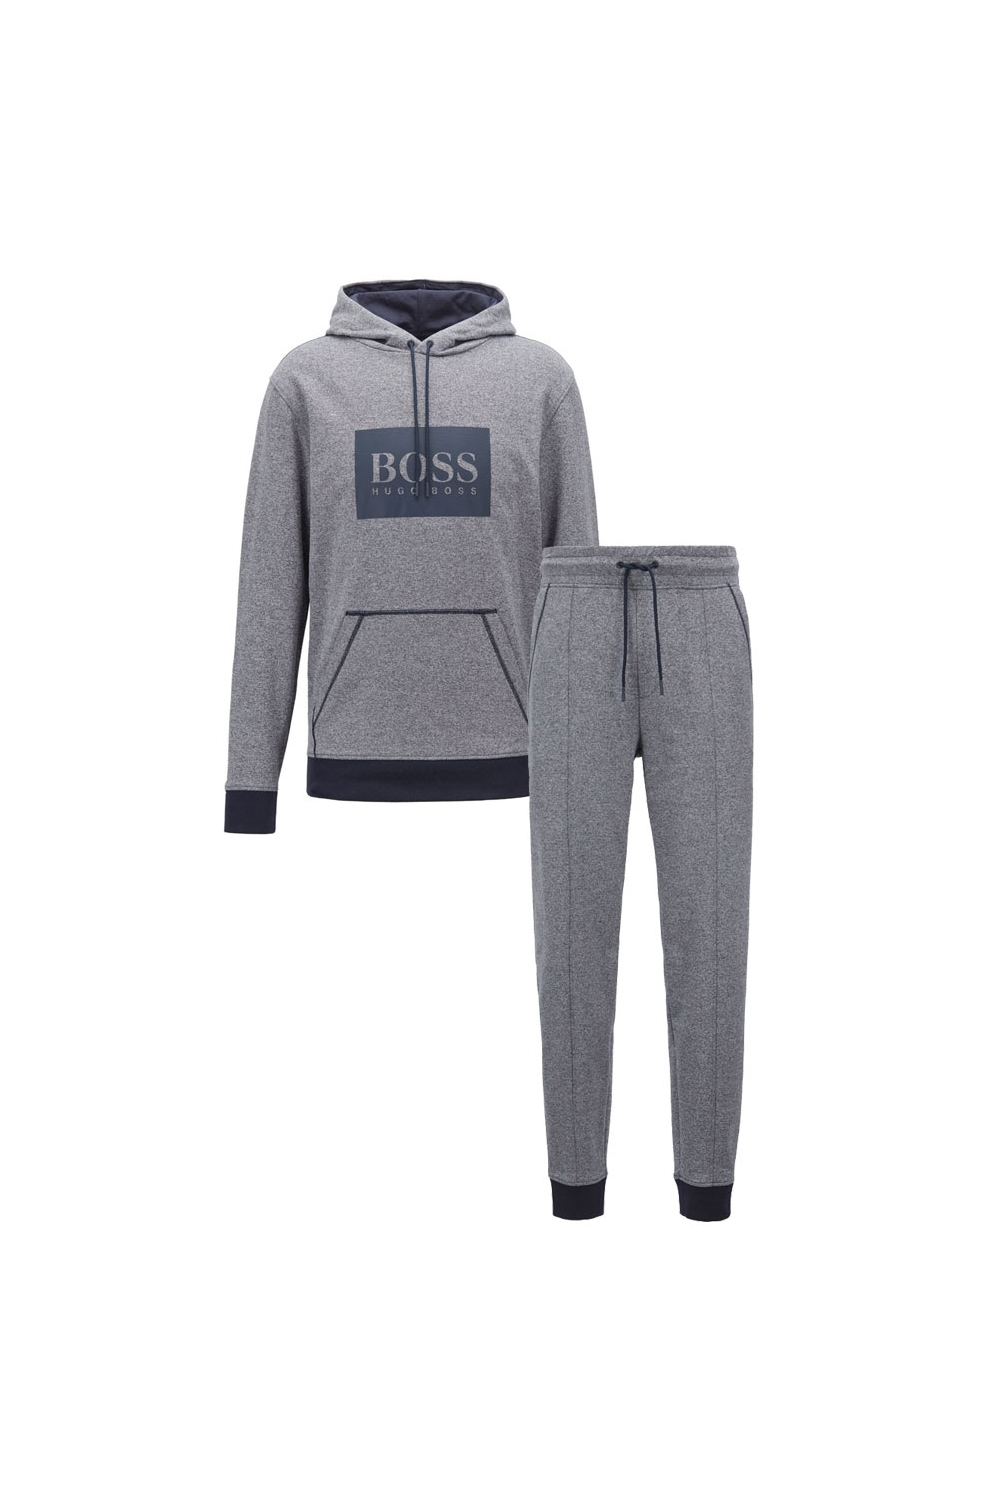 274d92e2 Hugo Boss Black Heritage Tracksuit In Grey | Michael Stewart Menswear